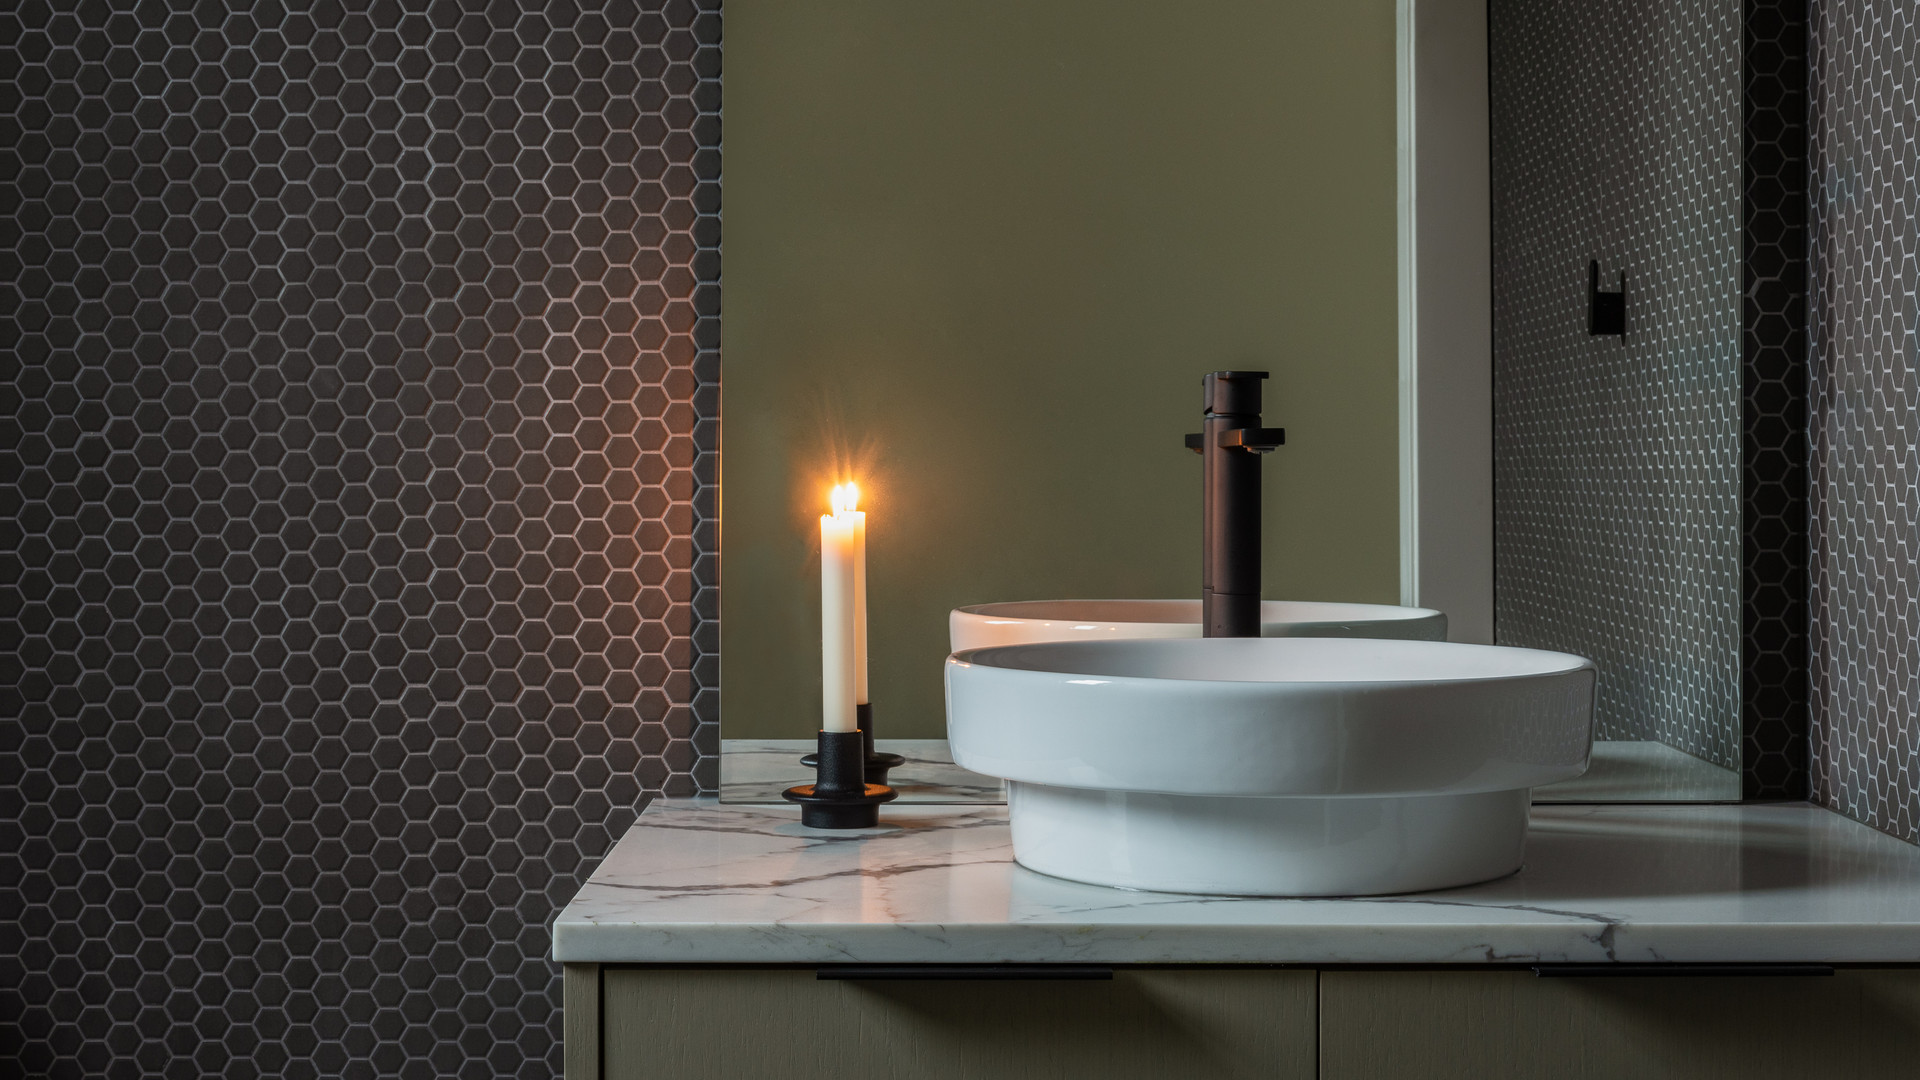 modern powder room with tiled wall by untitled design agency